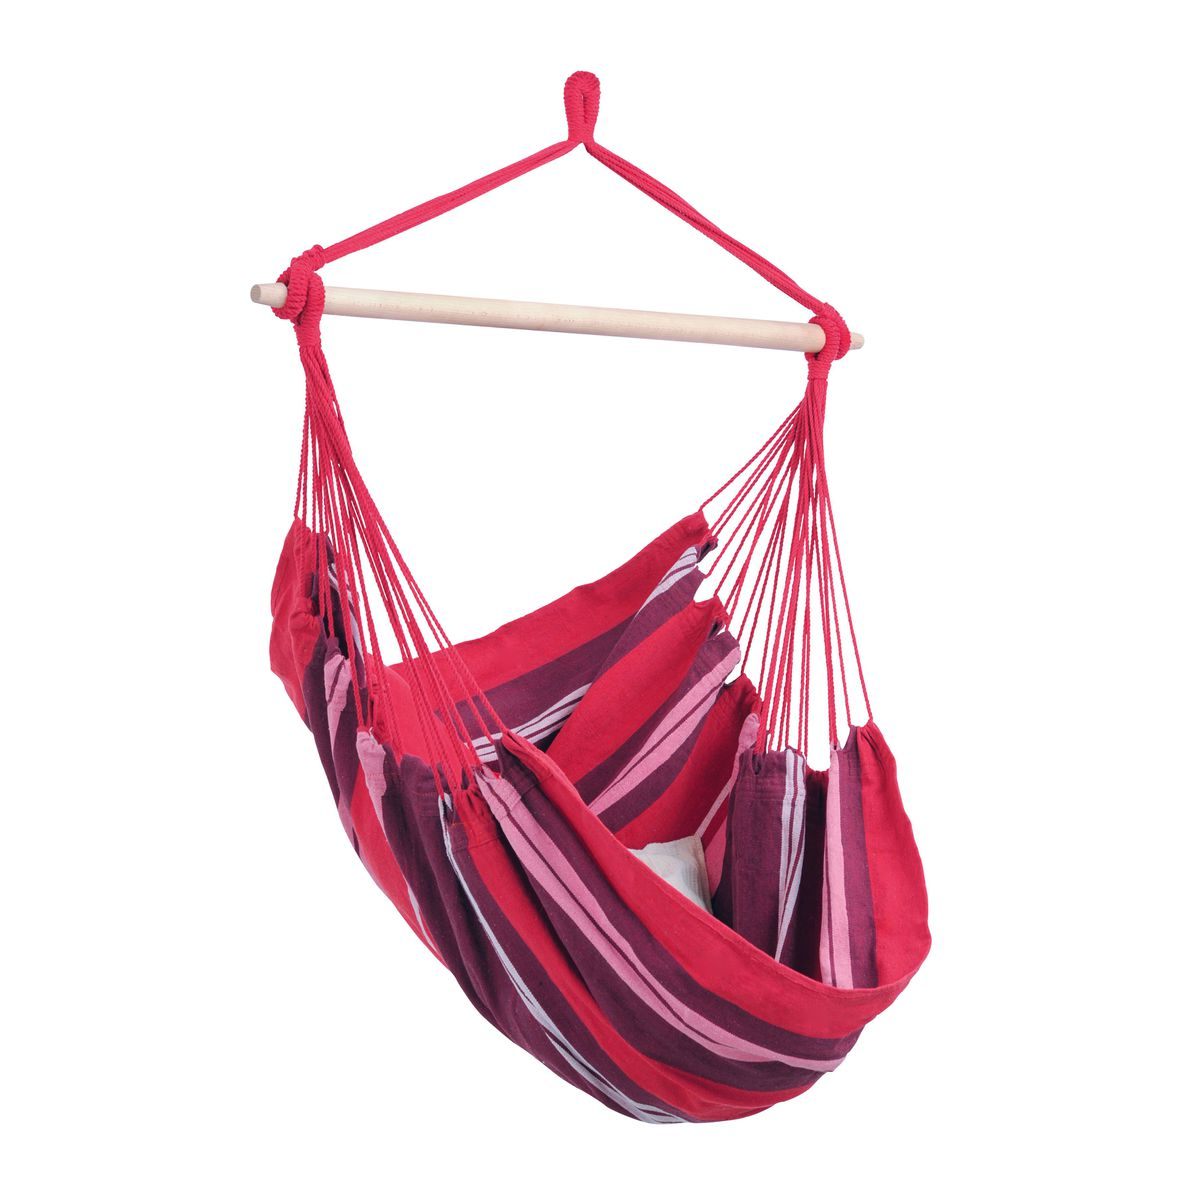 Amazonas Havanna Fuego Hanging Chair - Ruby's Garden Boutique